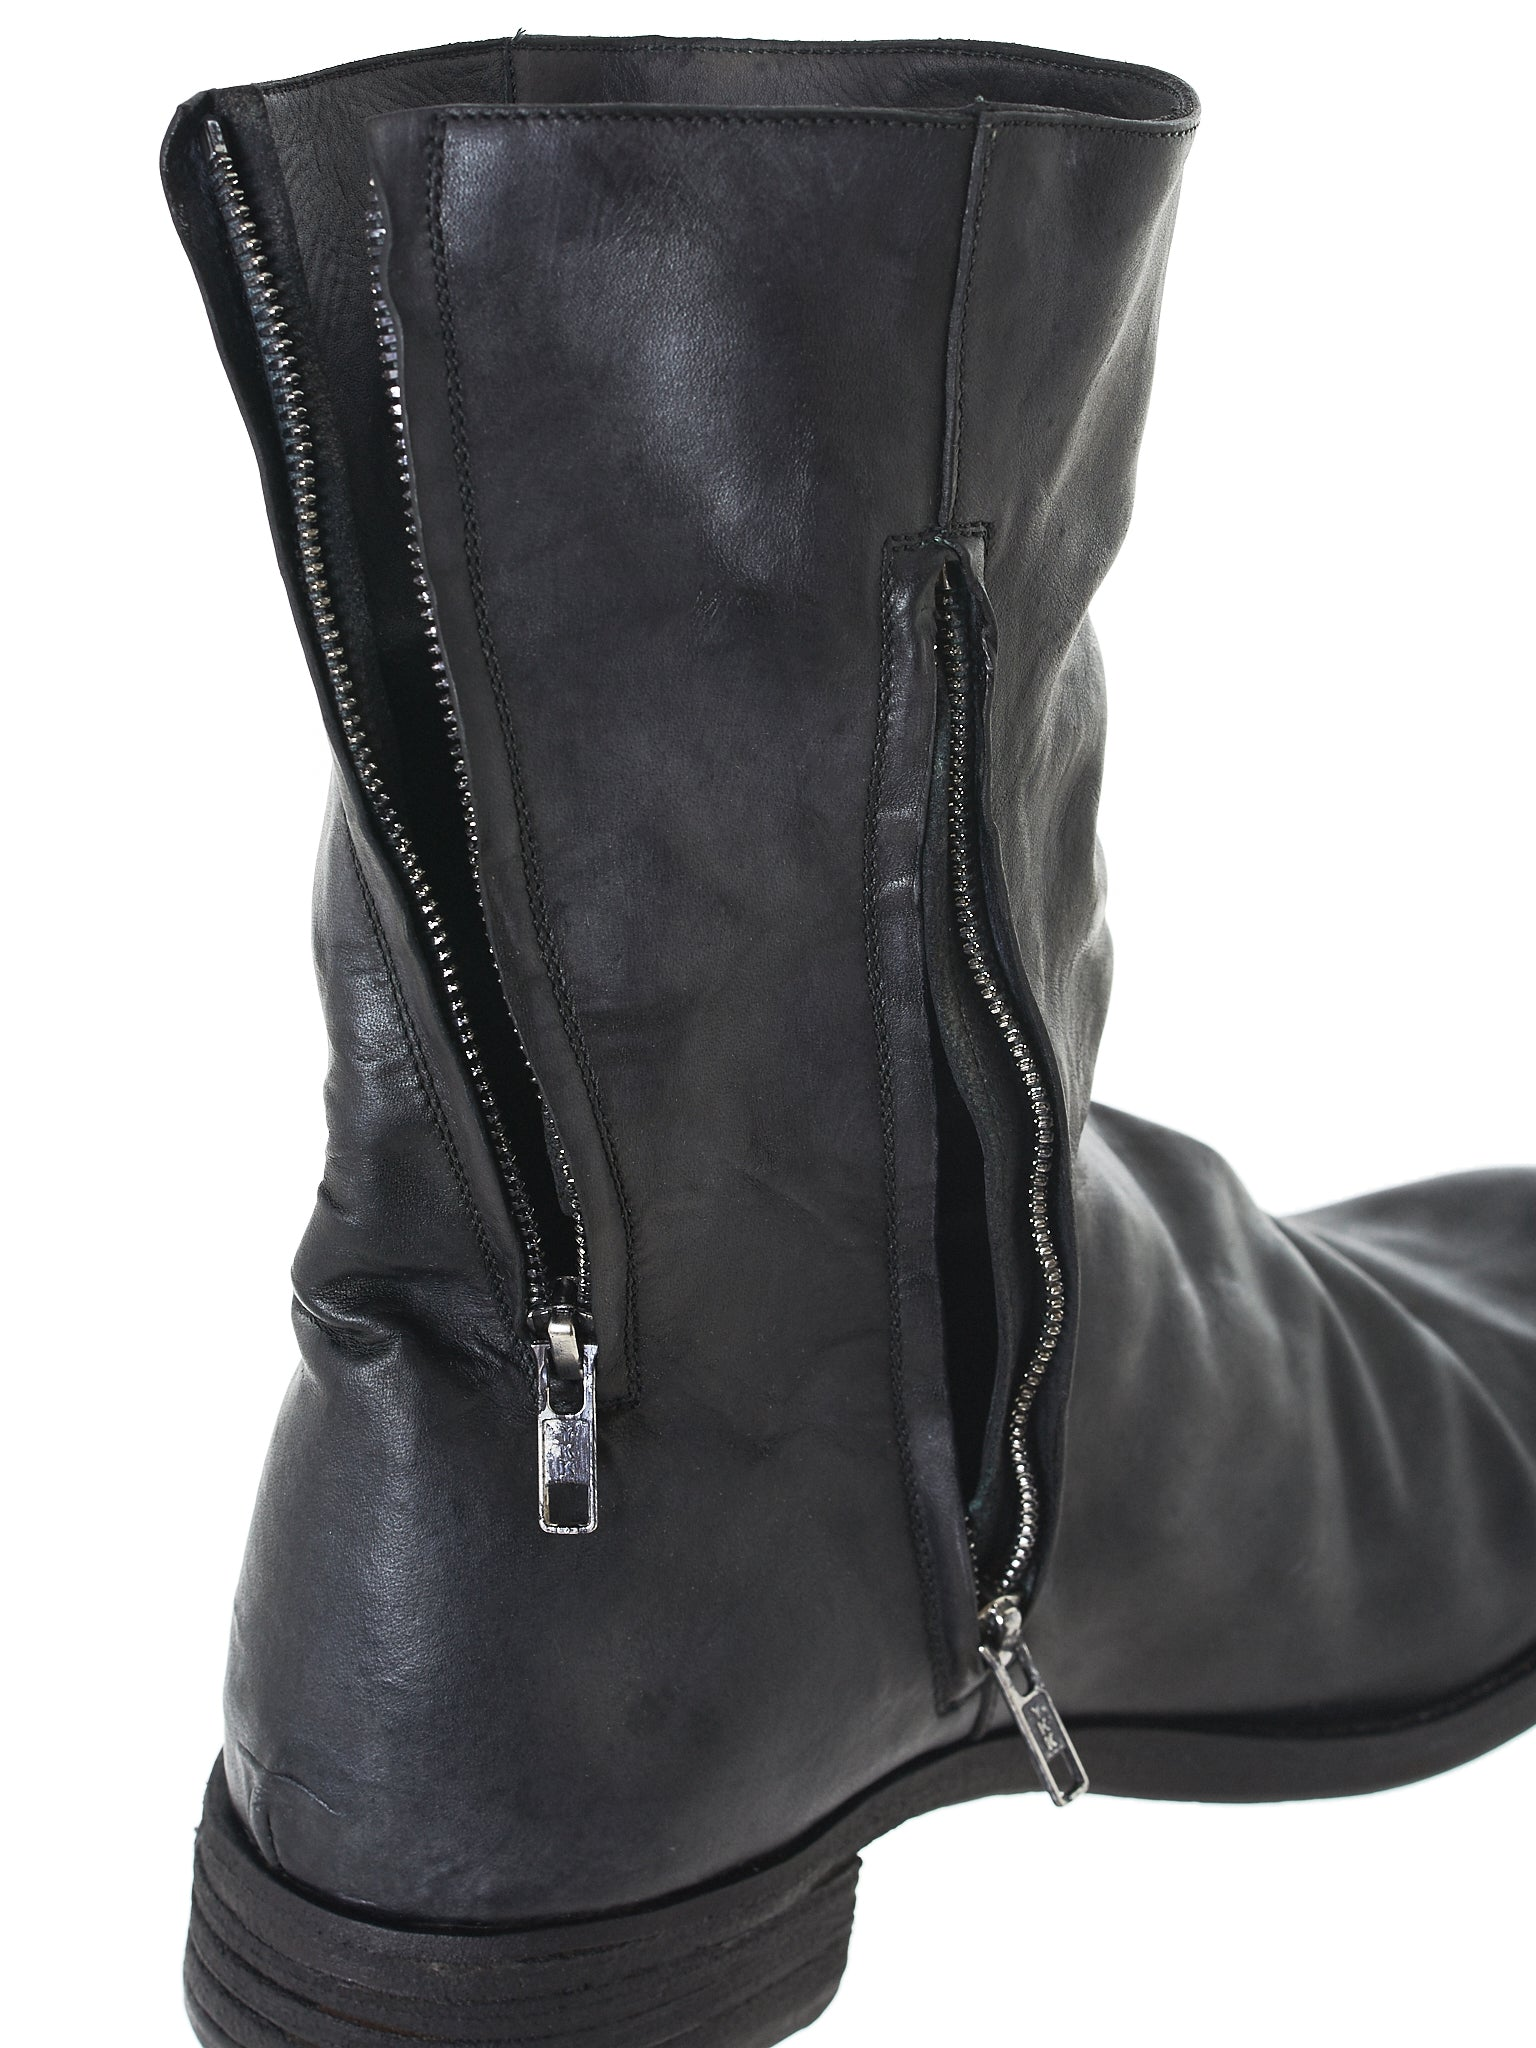 A Diciannoveventitre Boot - Hlorenzo detail 2